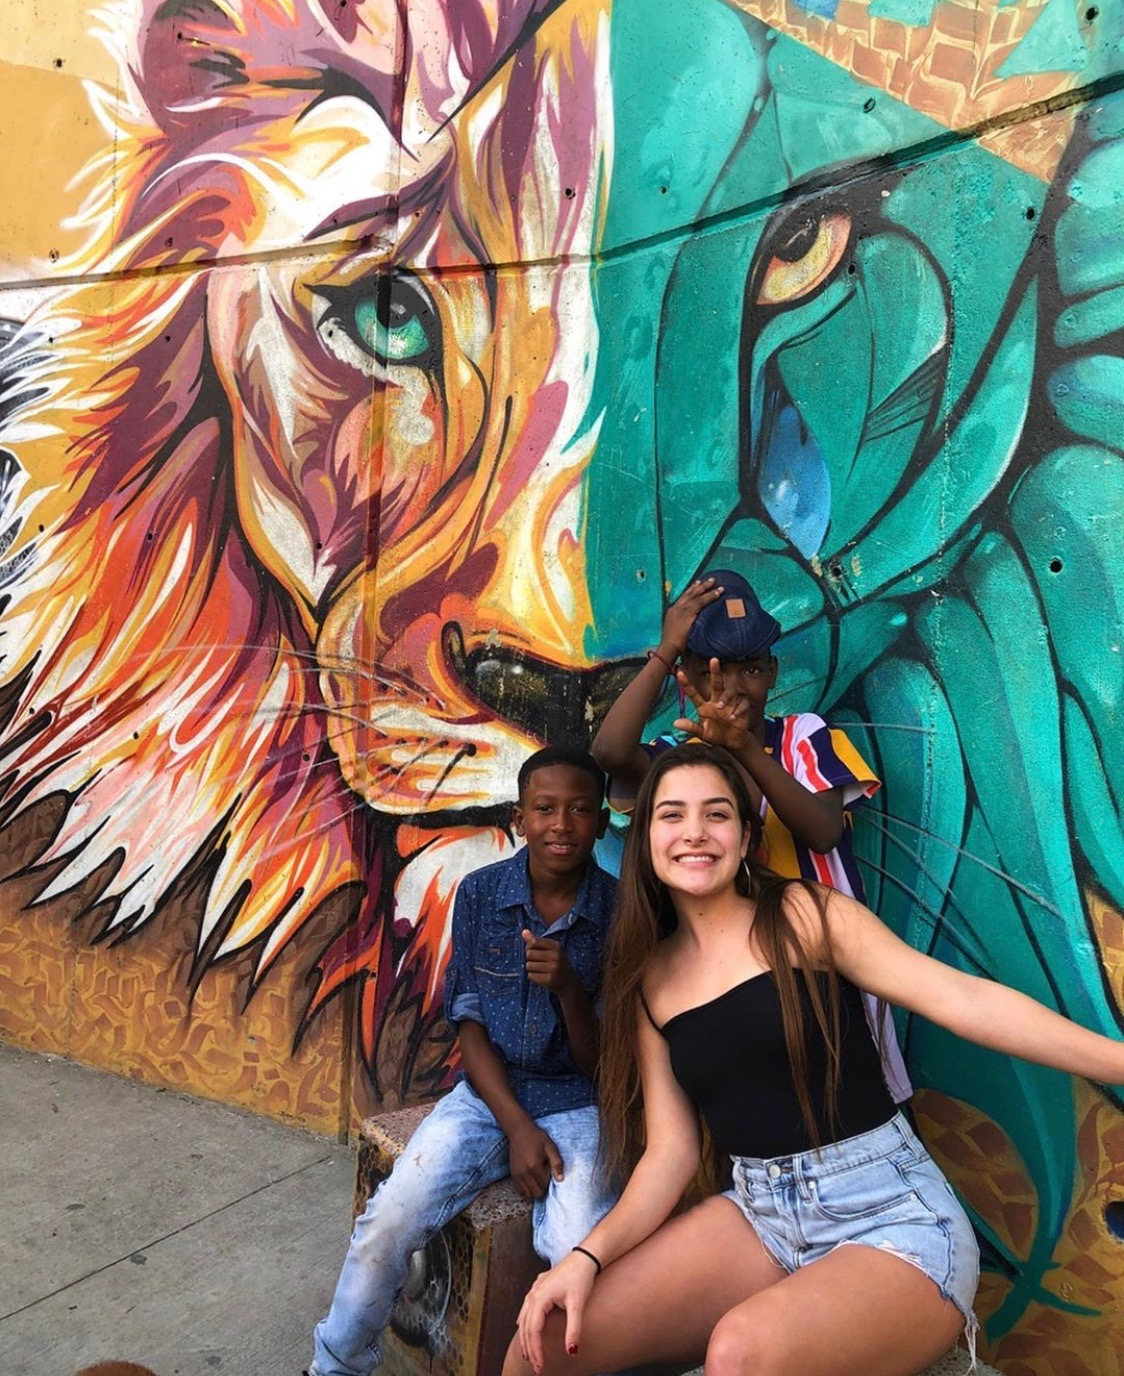 Raquel+poses+with+kids+while+in+Medellin%2C+Colombia+while+working+on+her+little+by+little+nonprofit